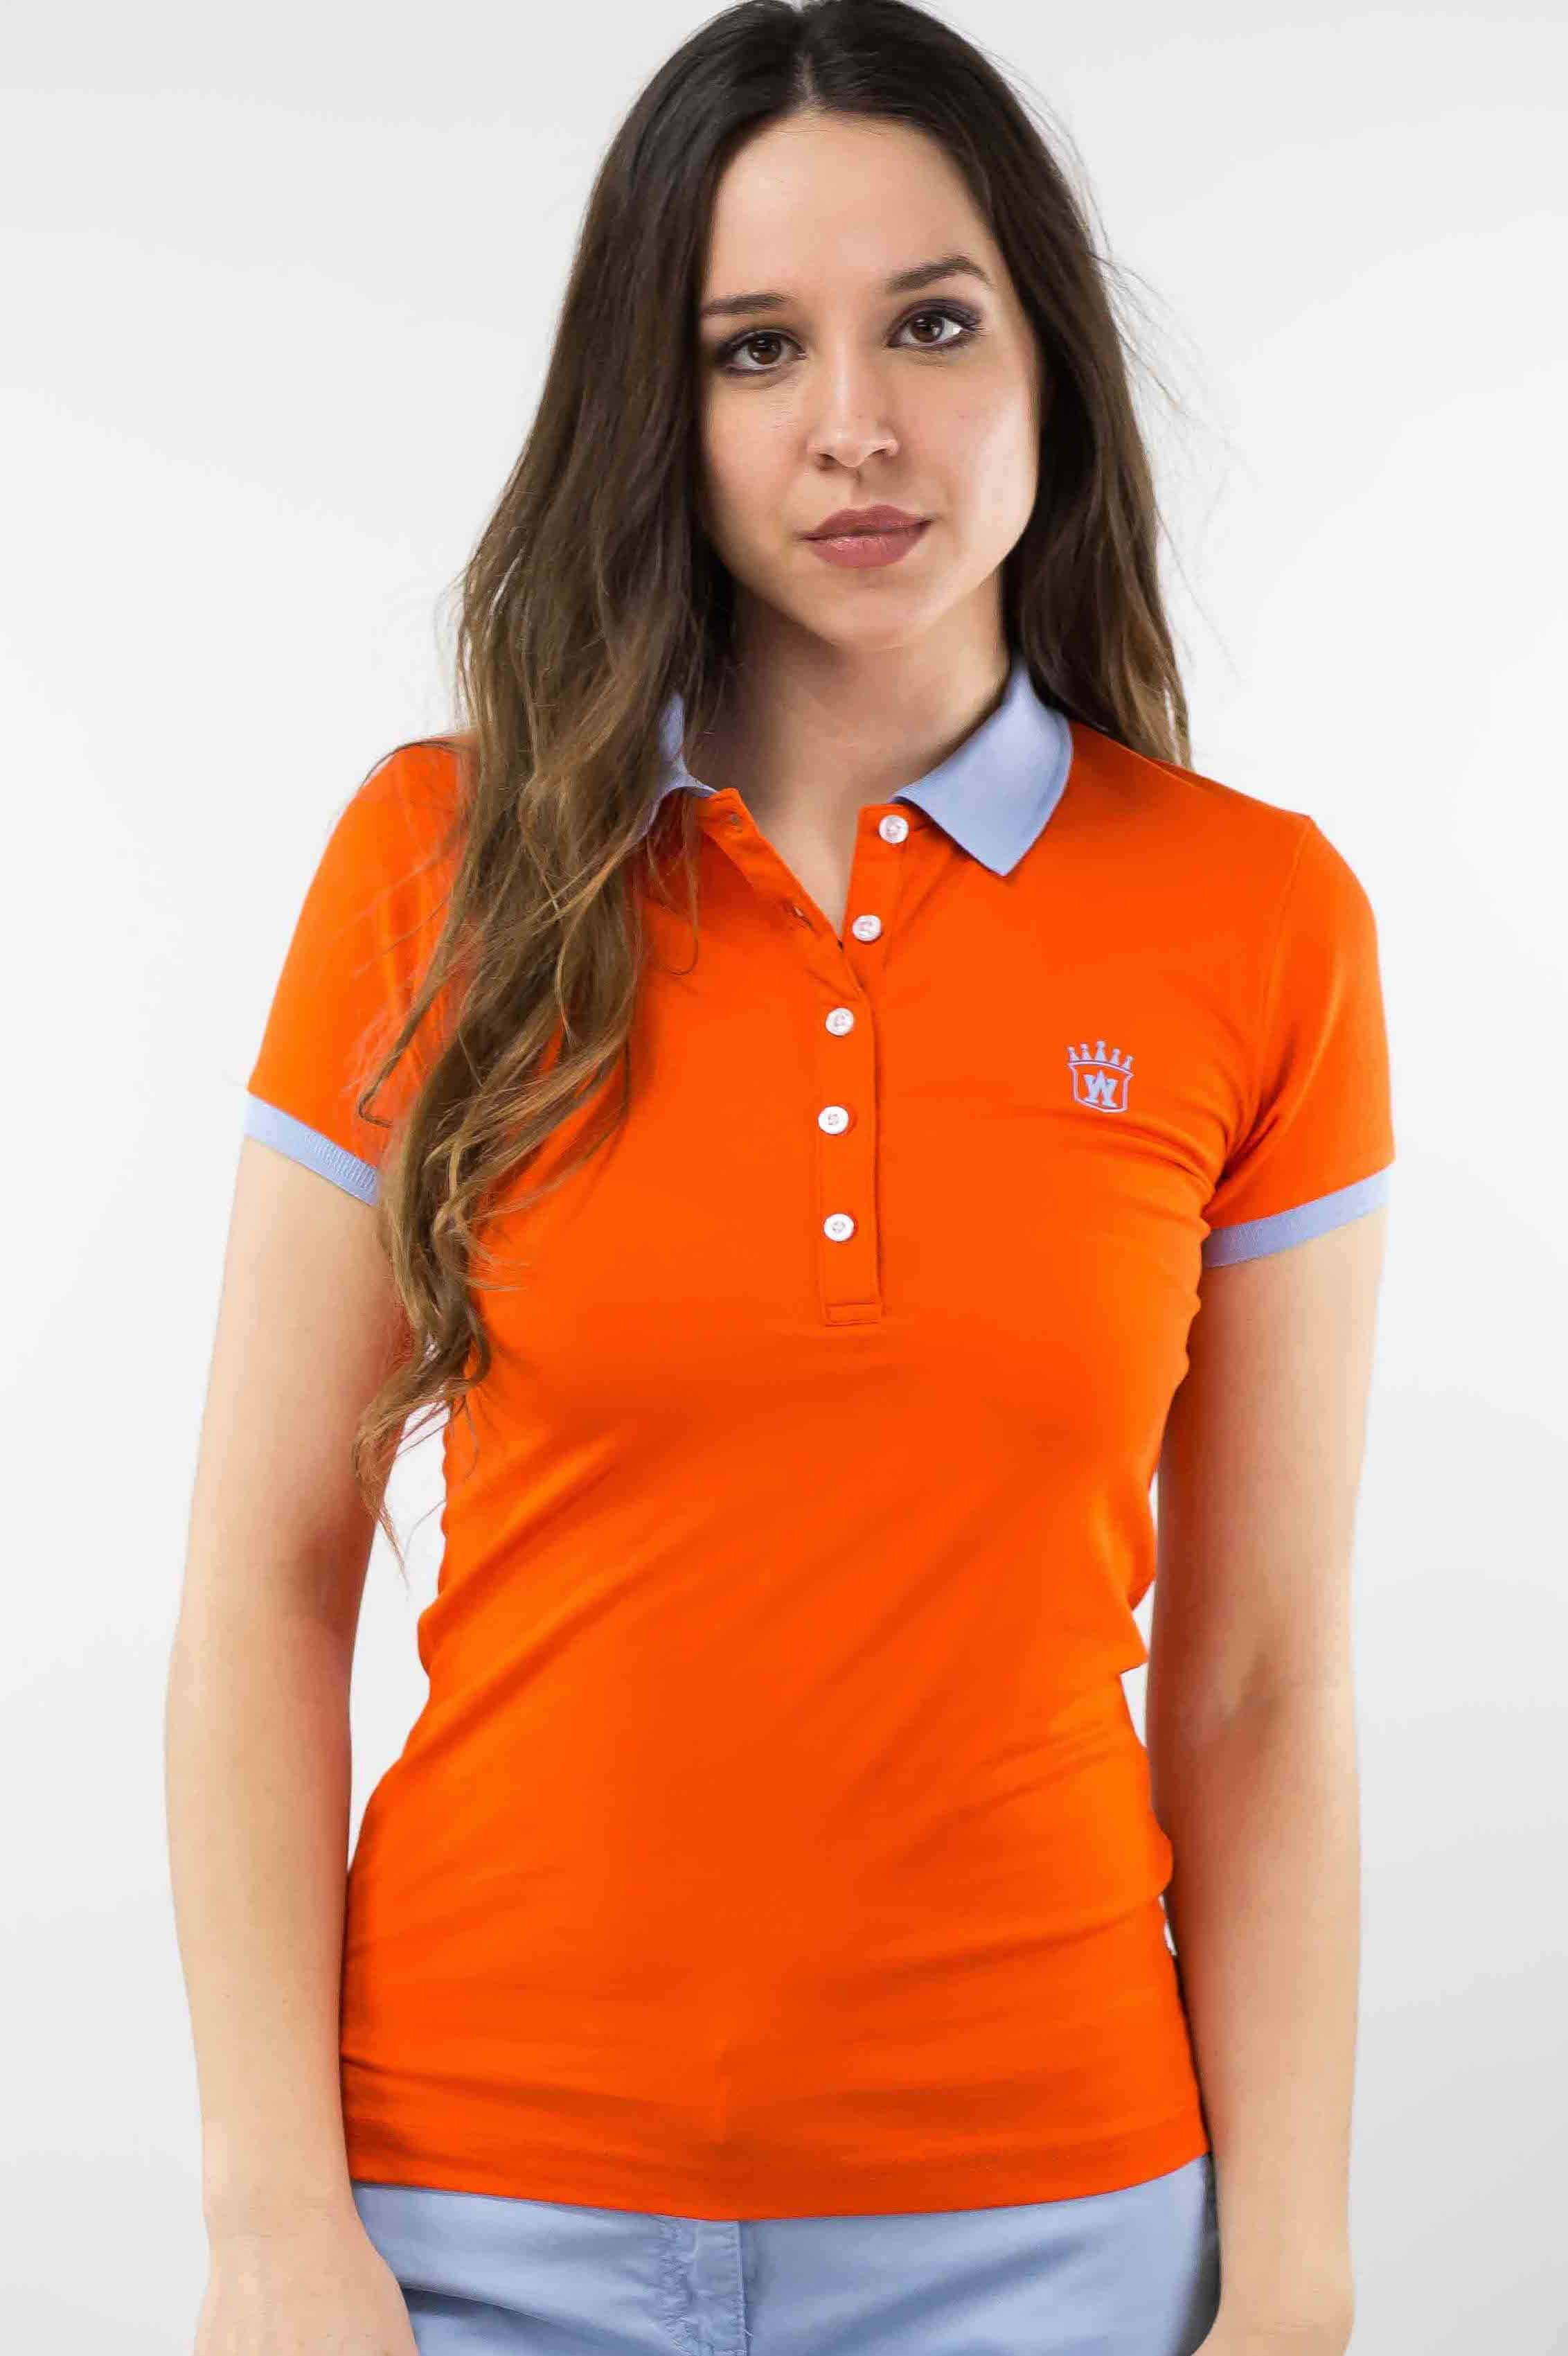 Rugby Polo Rugby Aristow Aristow Polo Femme Aristow Femme Polo Polo Rugby Femme wkZuOTPXi